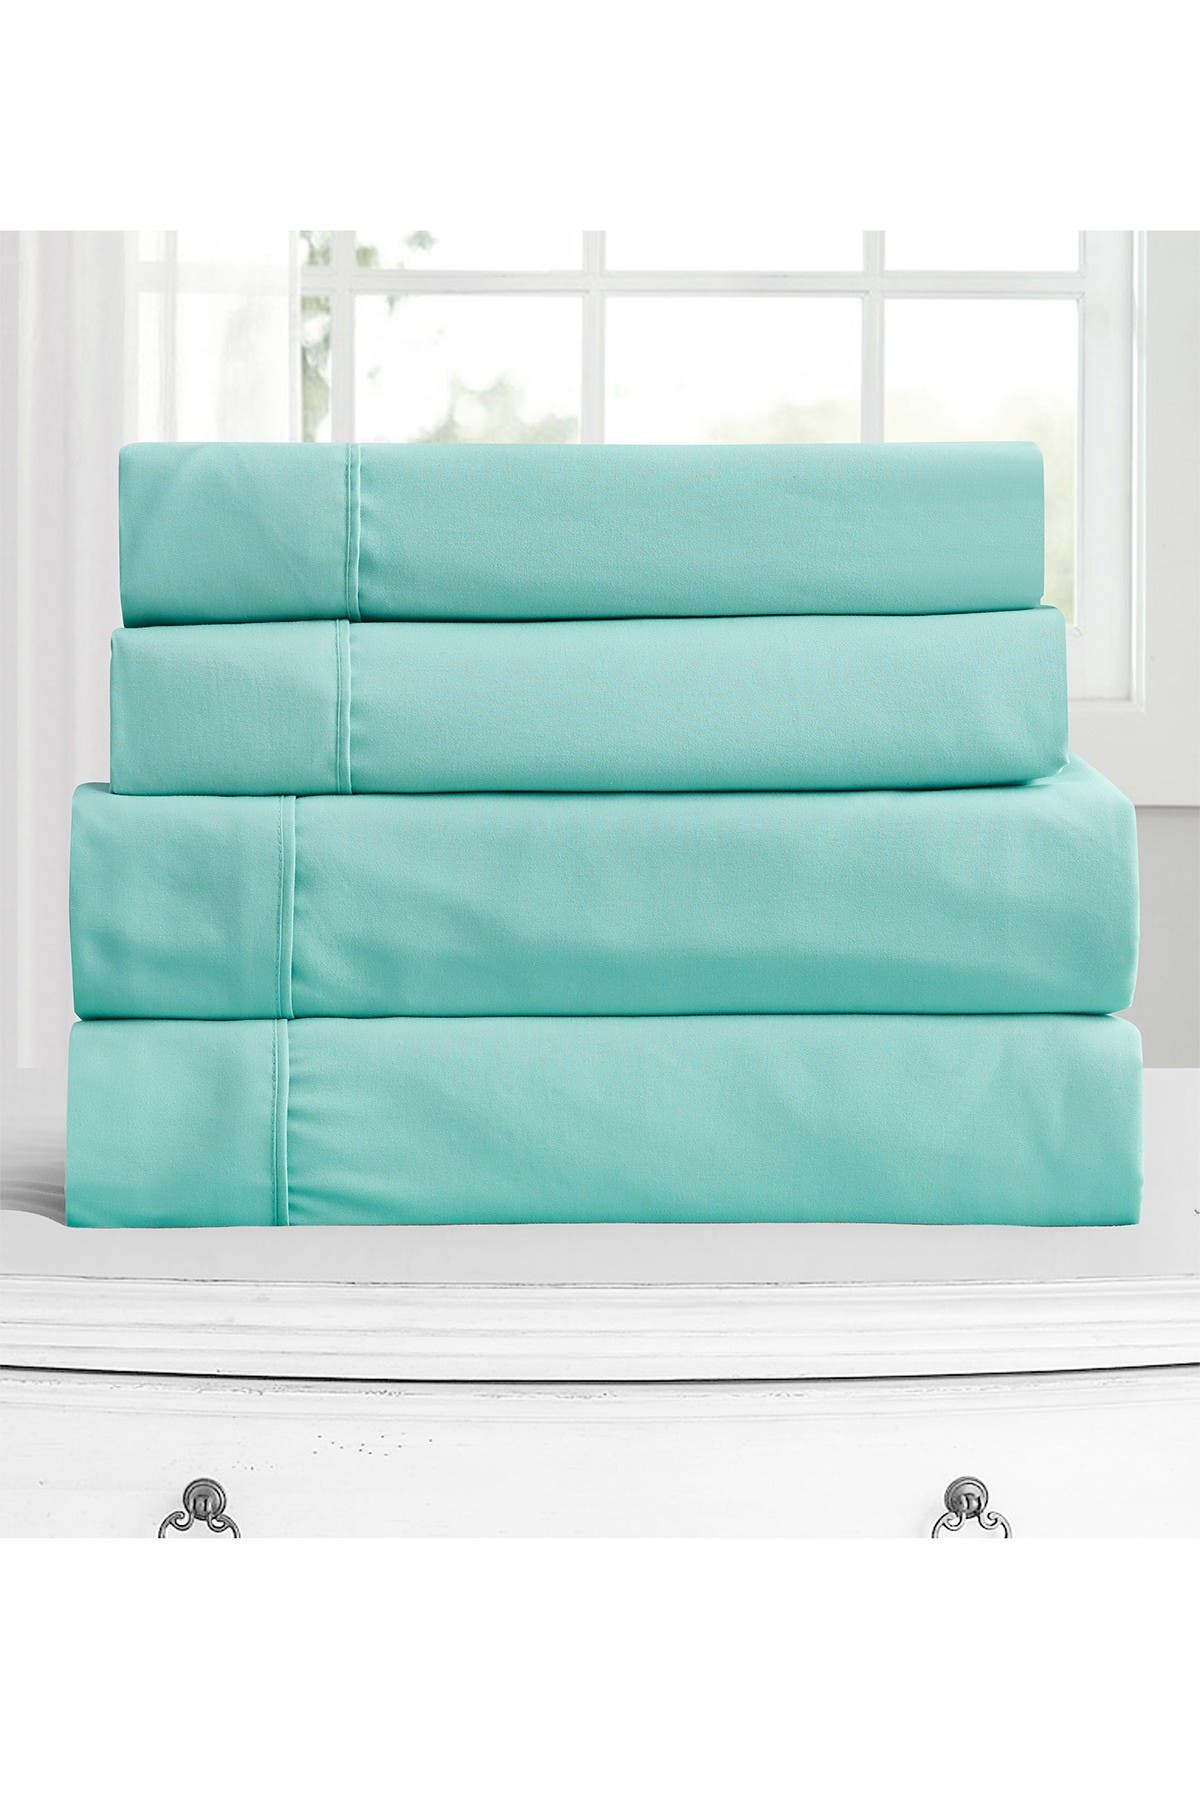 Image of Rejuve MD King 130 GSM 4-Piece Superior Luxury Microfiber Sheet Set - Green